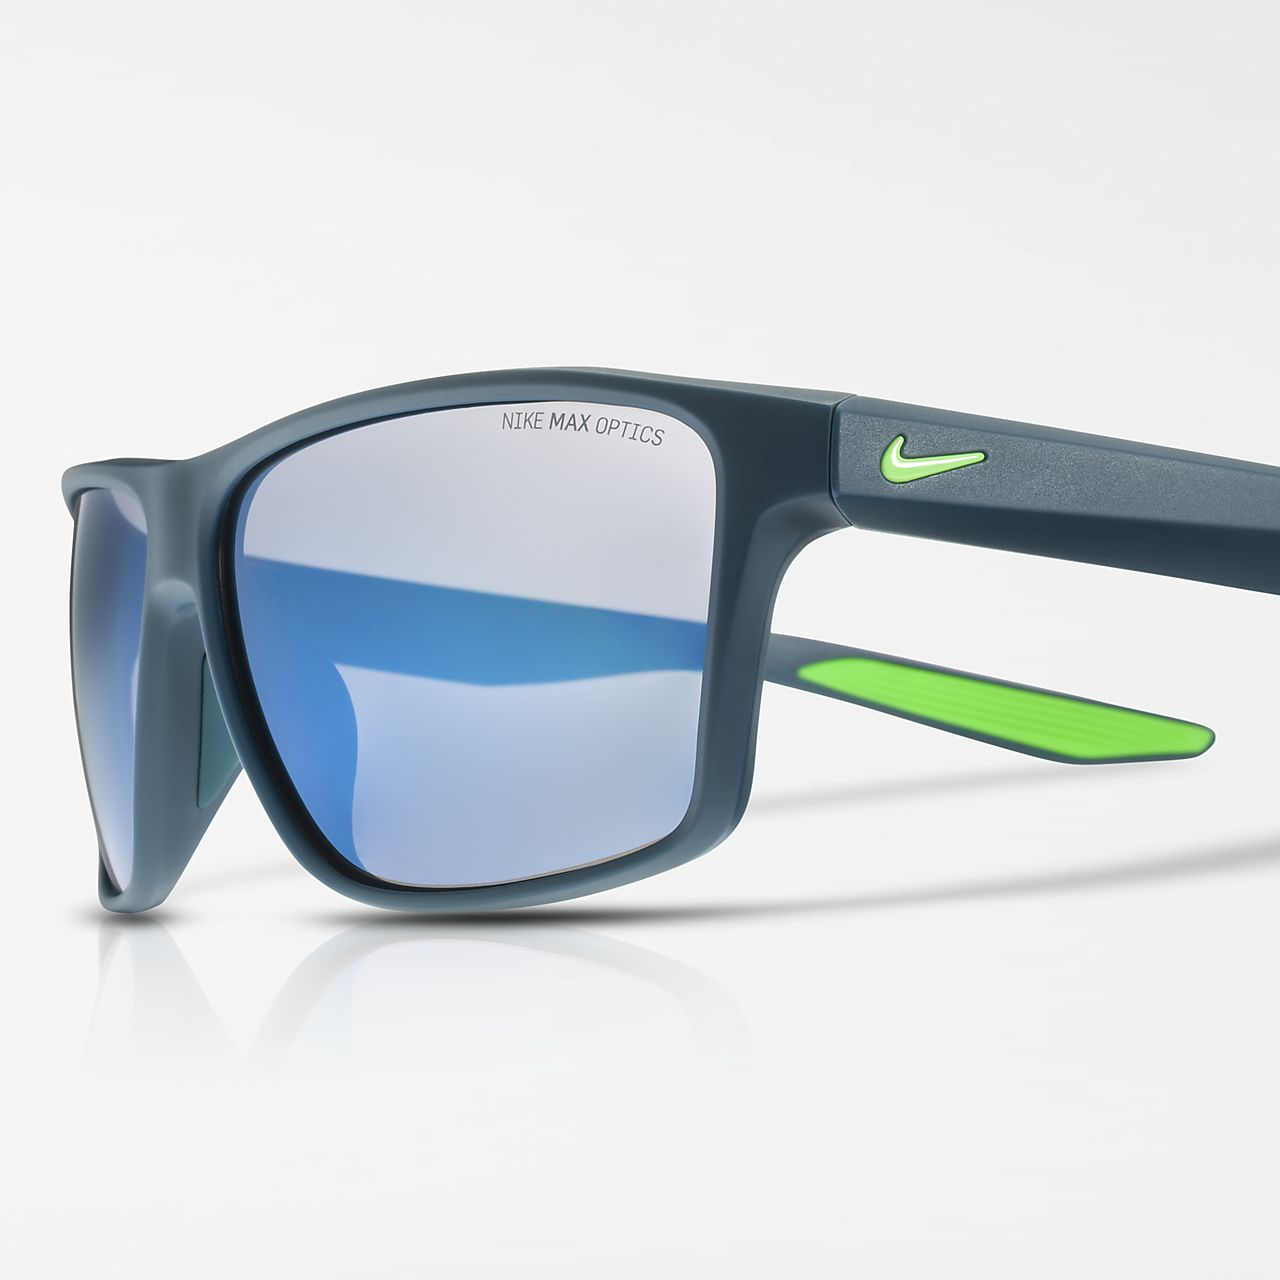 Nike Premier Mirrored Golf Sunglasses